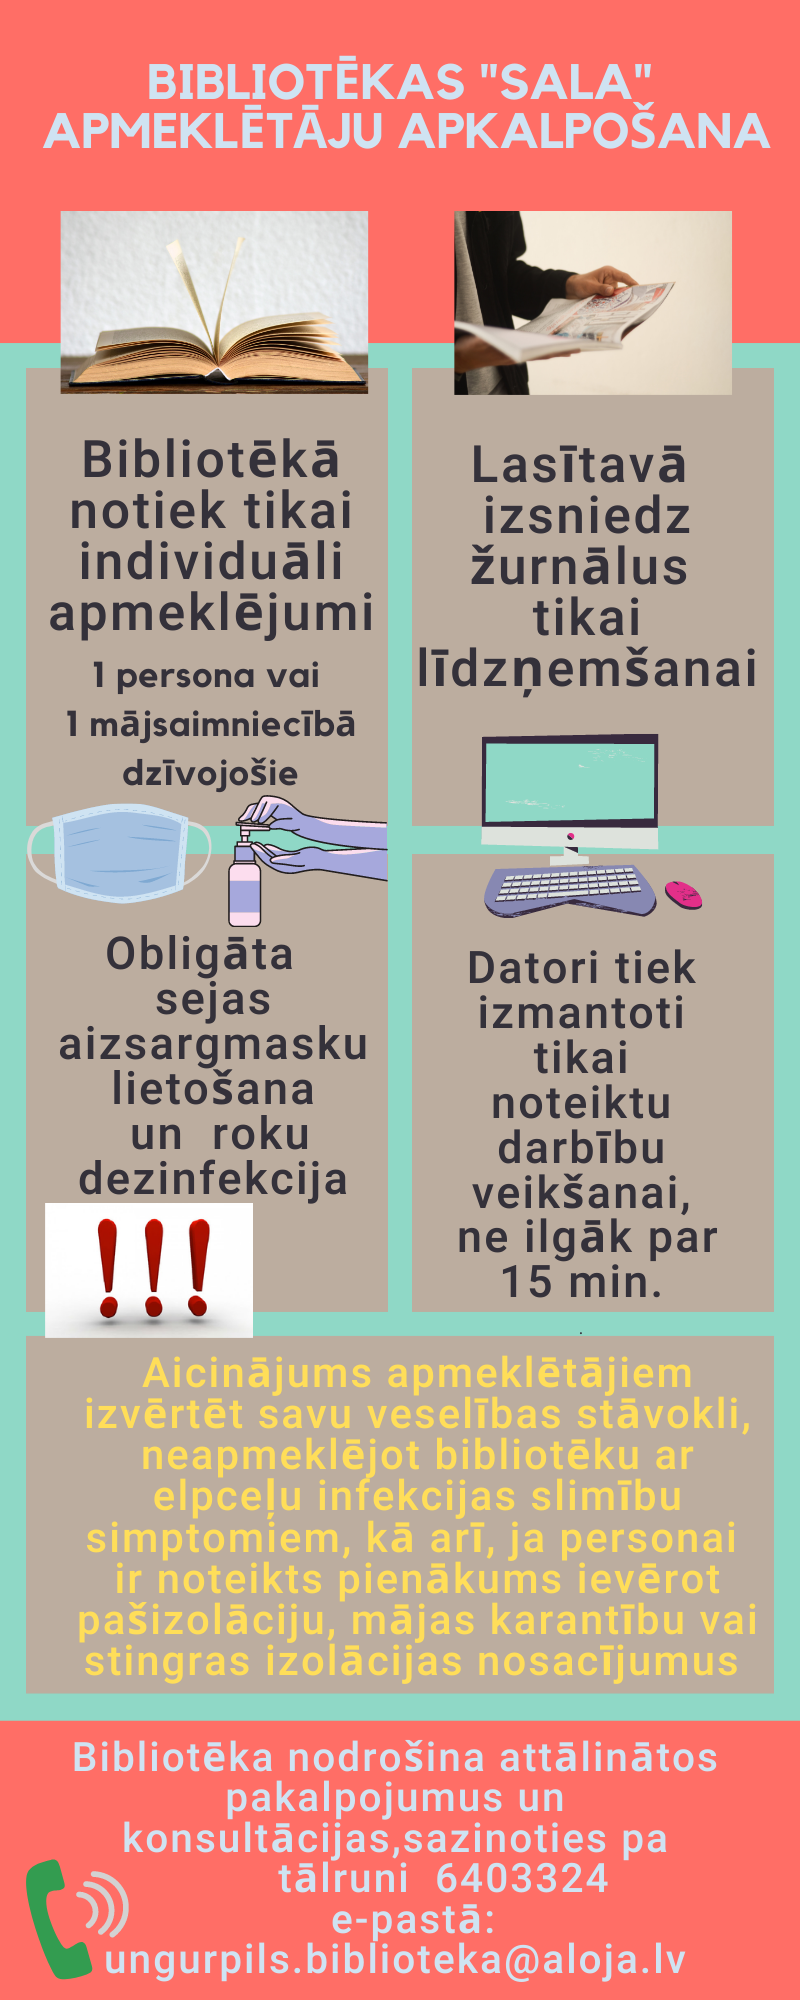 pastel-books-for-a-cause-charity-infographic-003